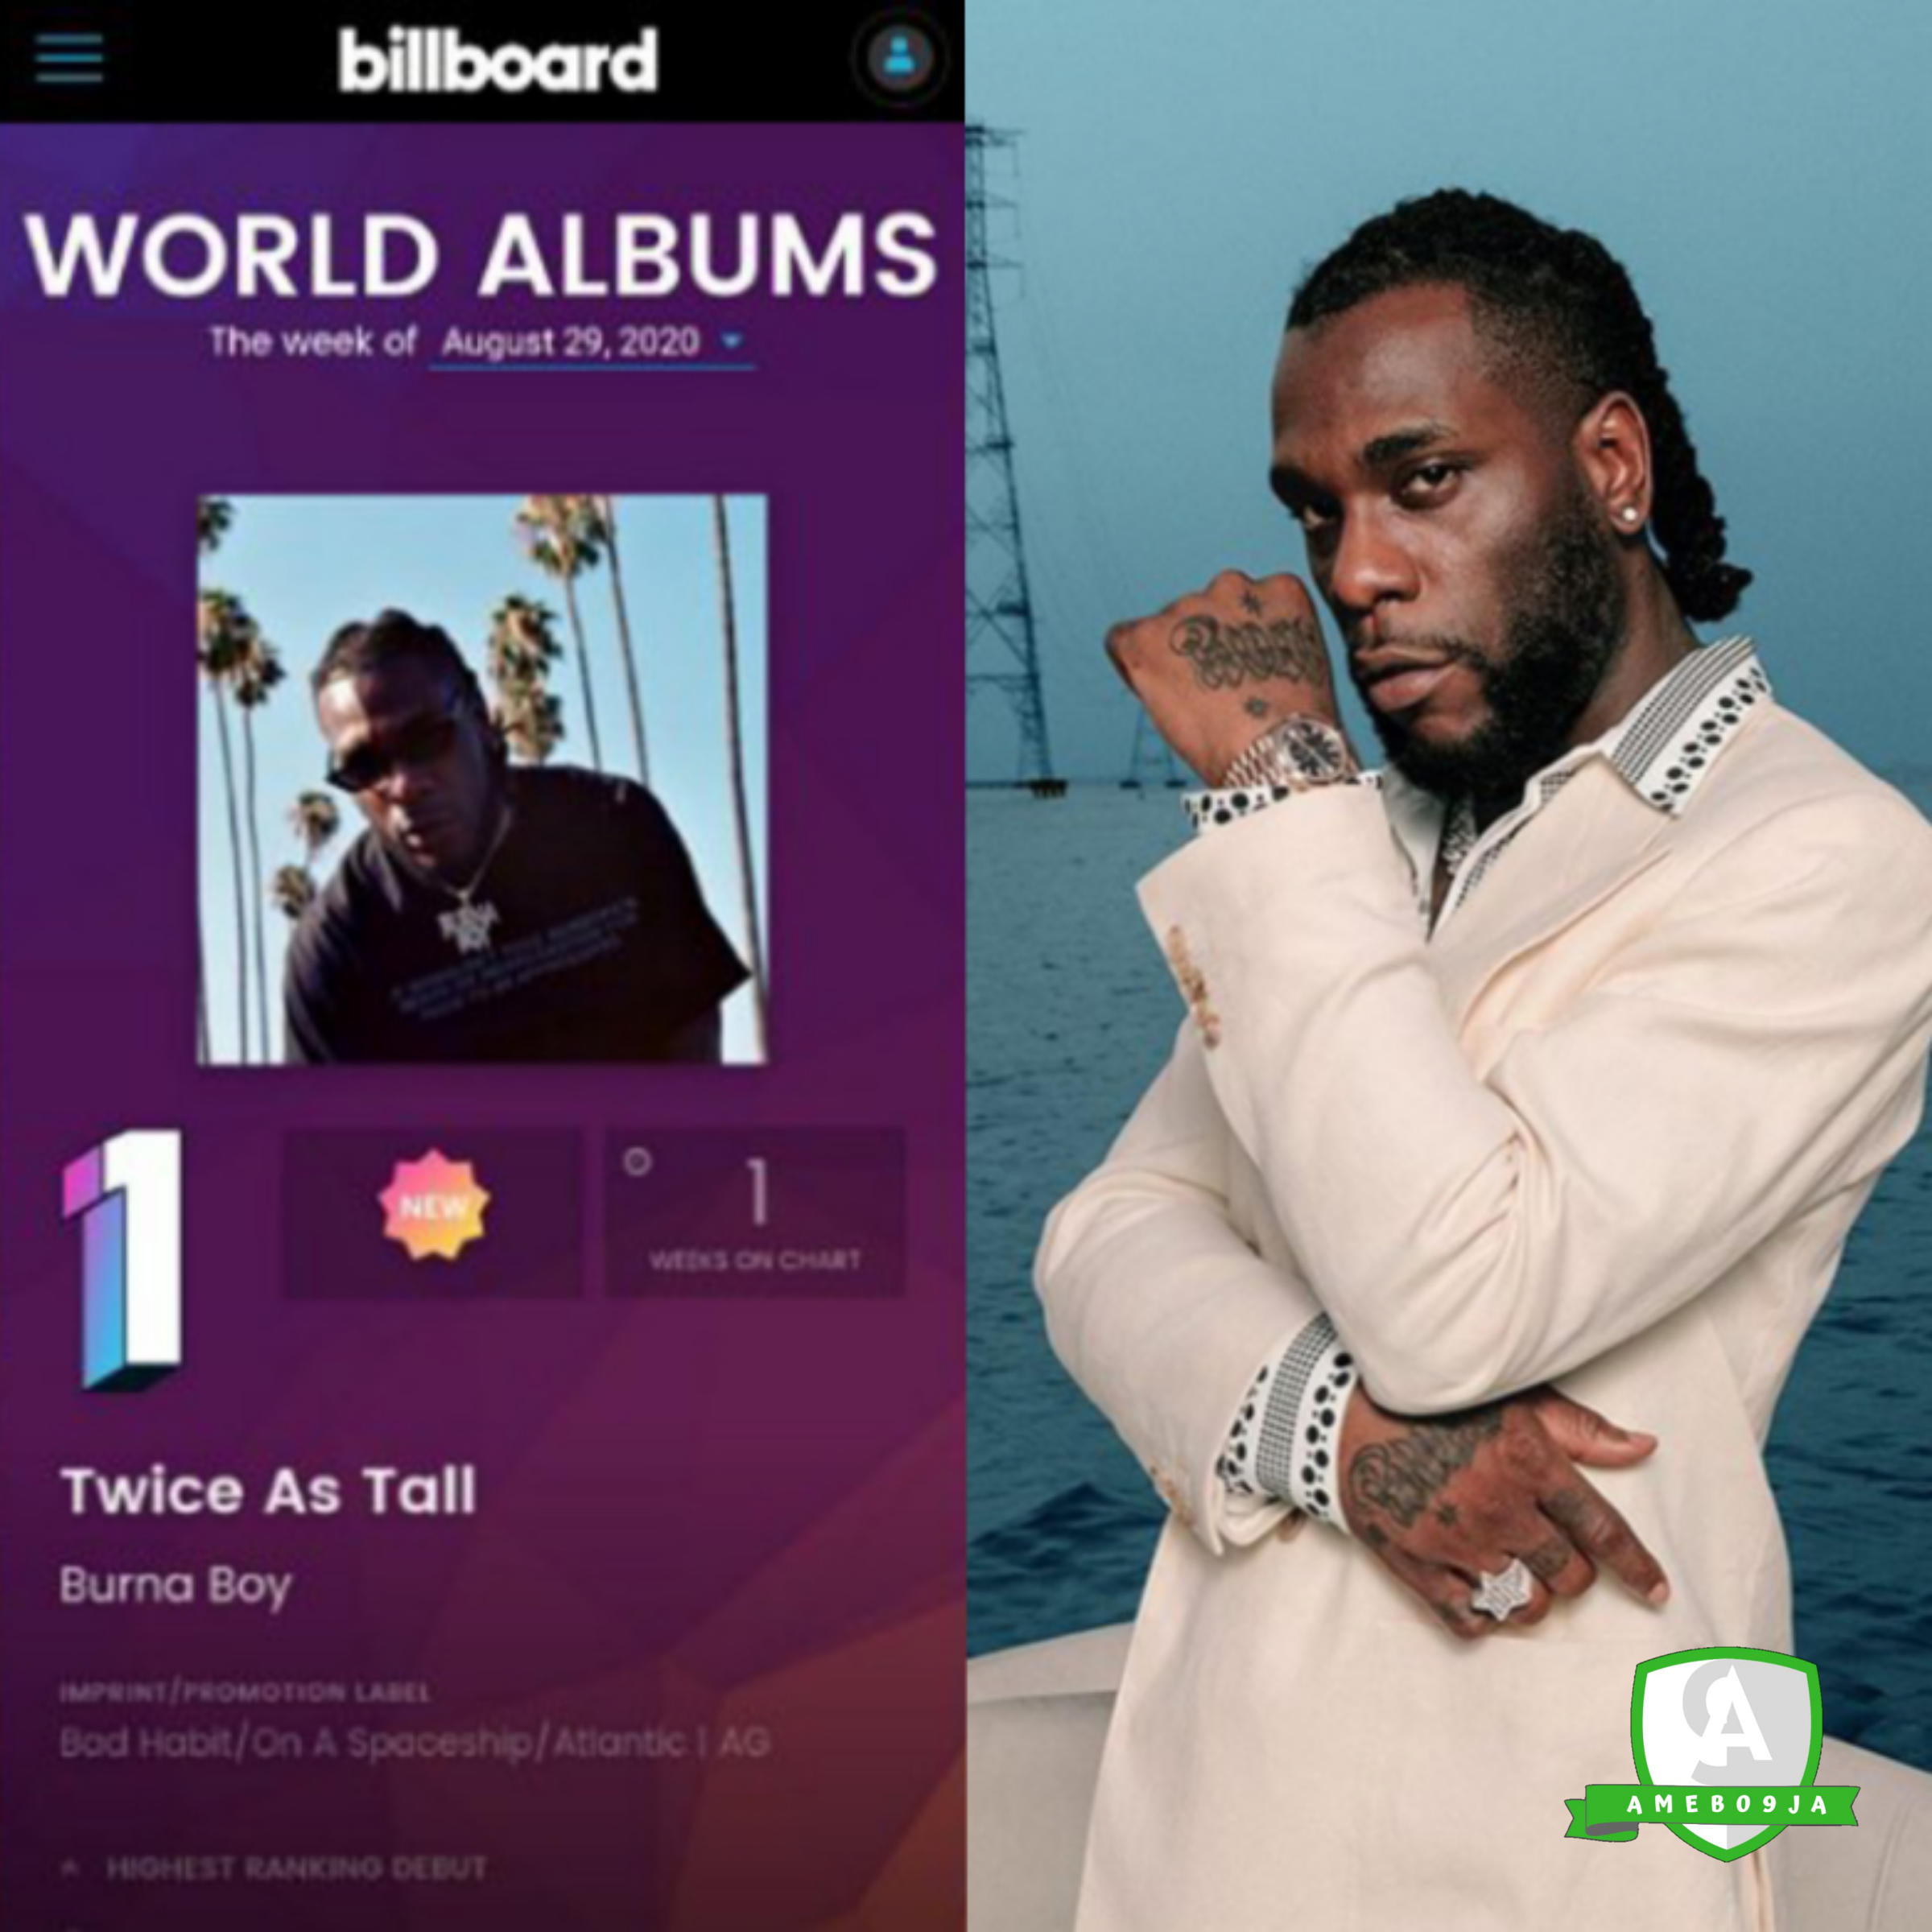 """Burna Boy album """"Twice As Tall"""" now No.1 in the whole world"""